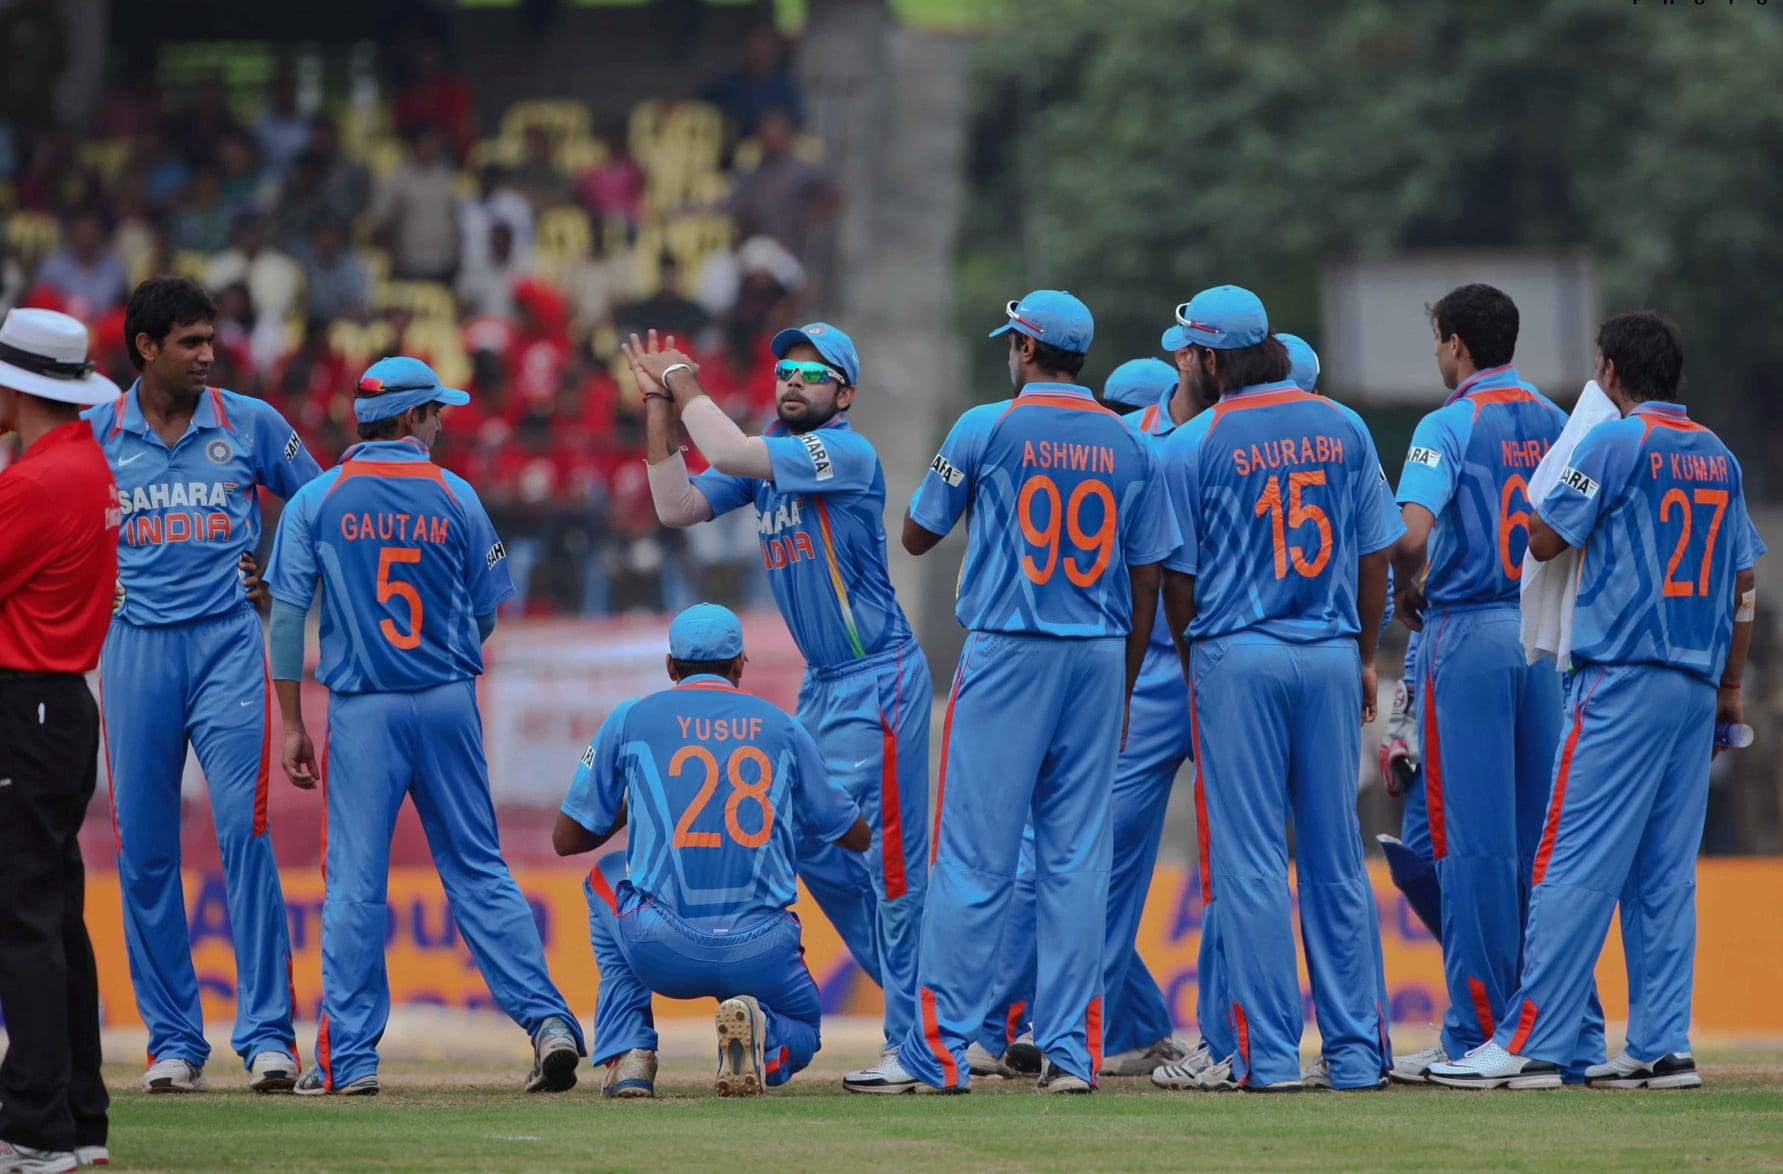 Do Brands Pay Too Much For Indian National Cricket Team